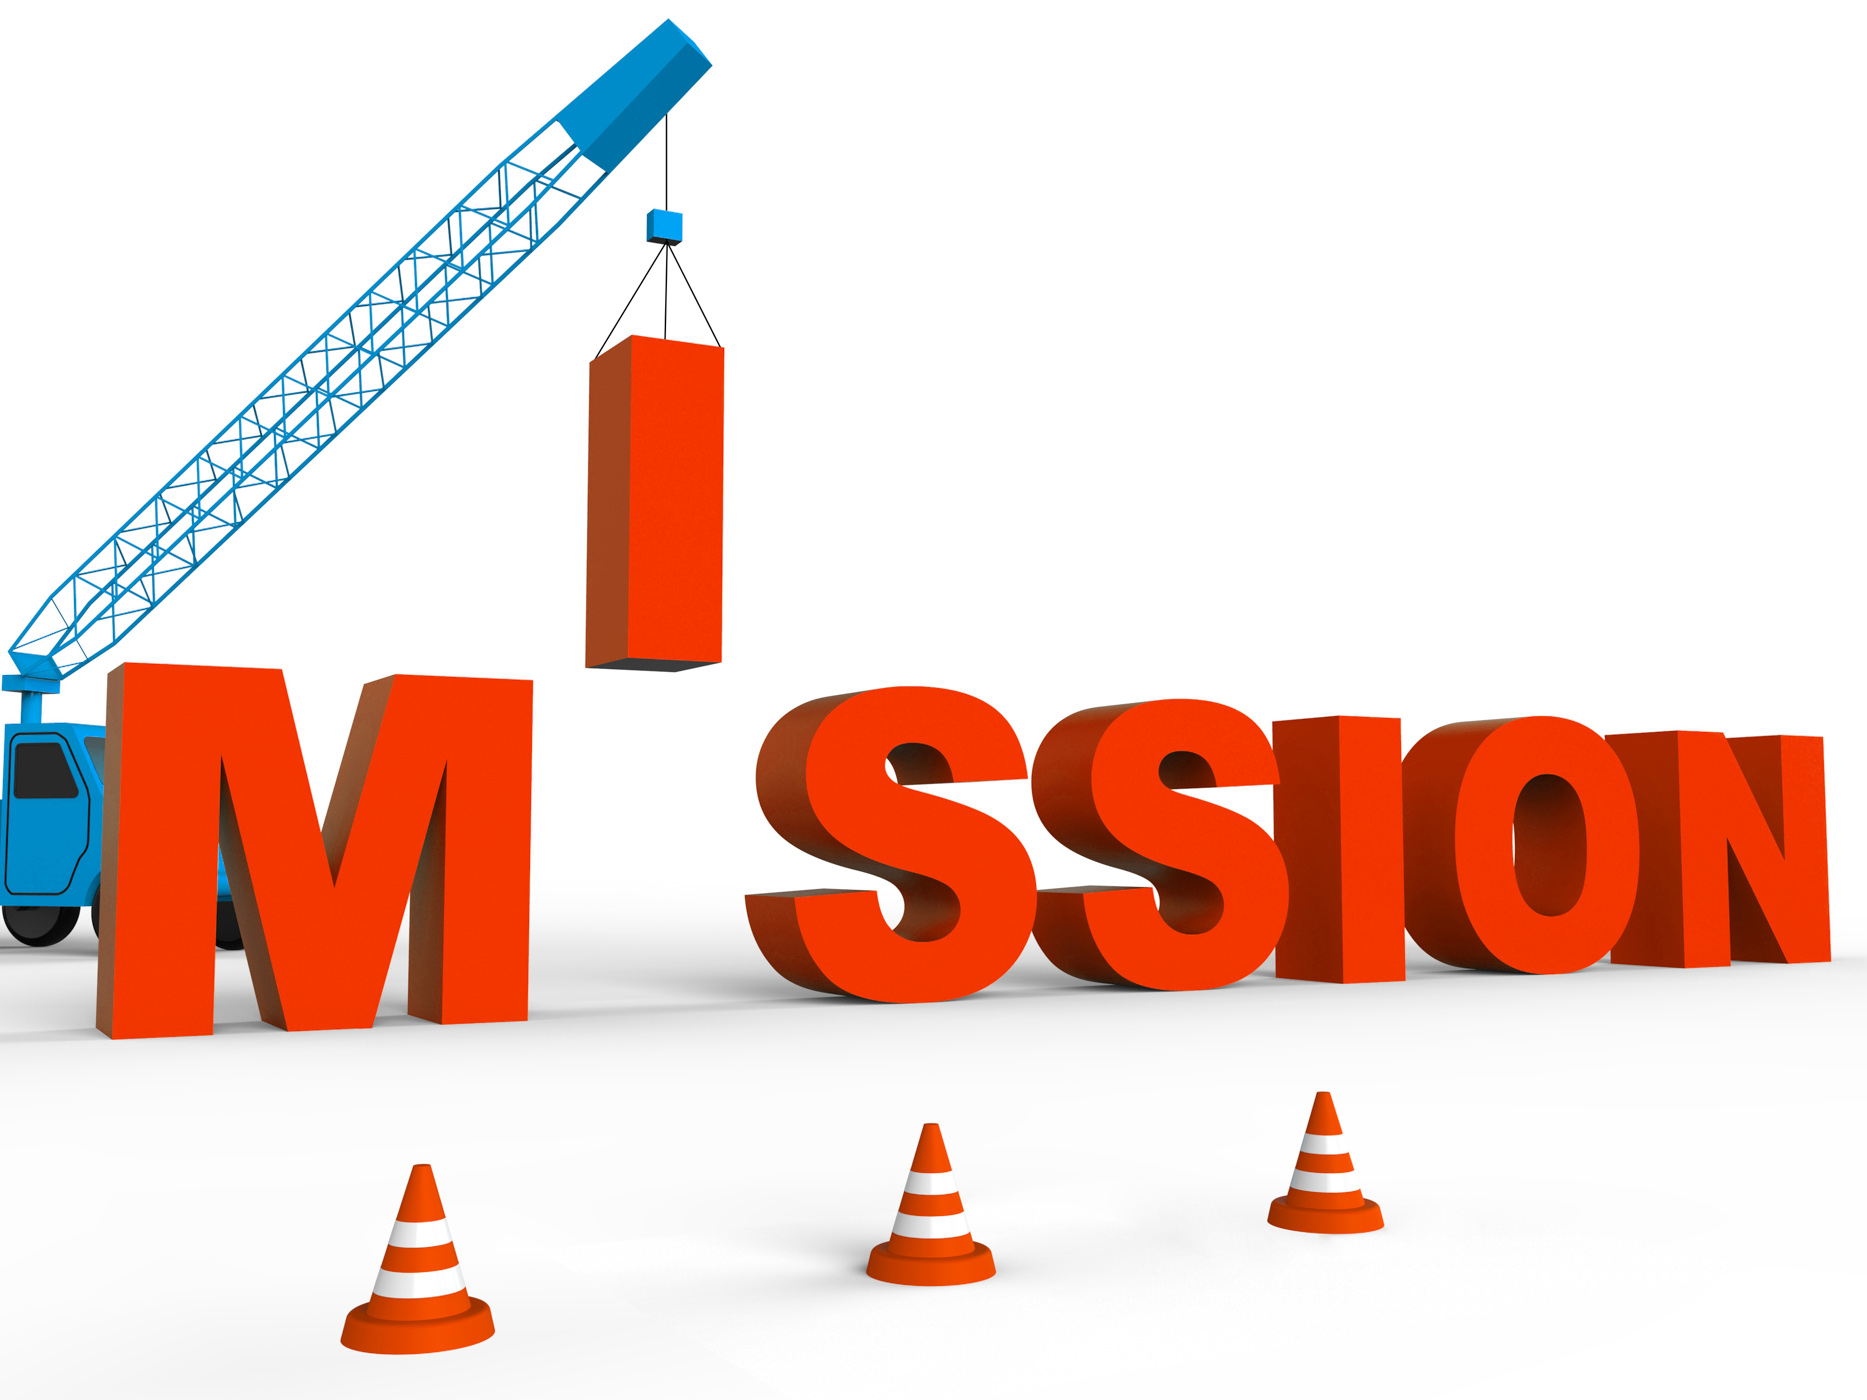 Build Mission Indicates Leadership Aspirations And Strategy 3d Renderi, 3drendering, Motivation, Target, Strategy, HQ Photo